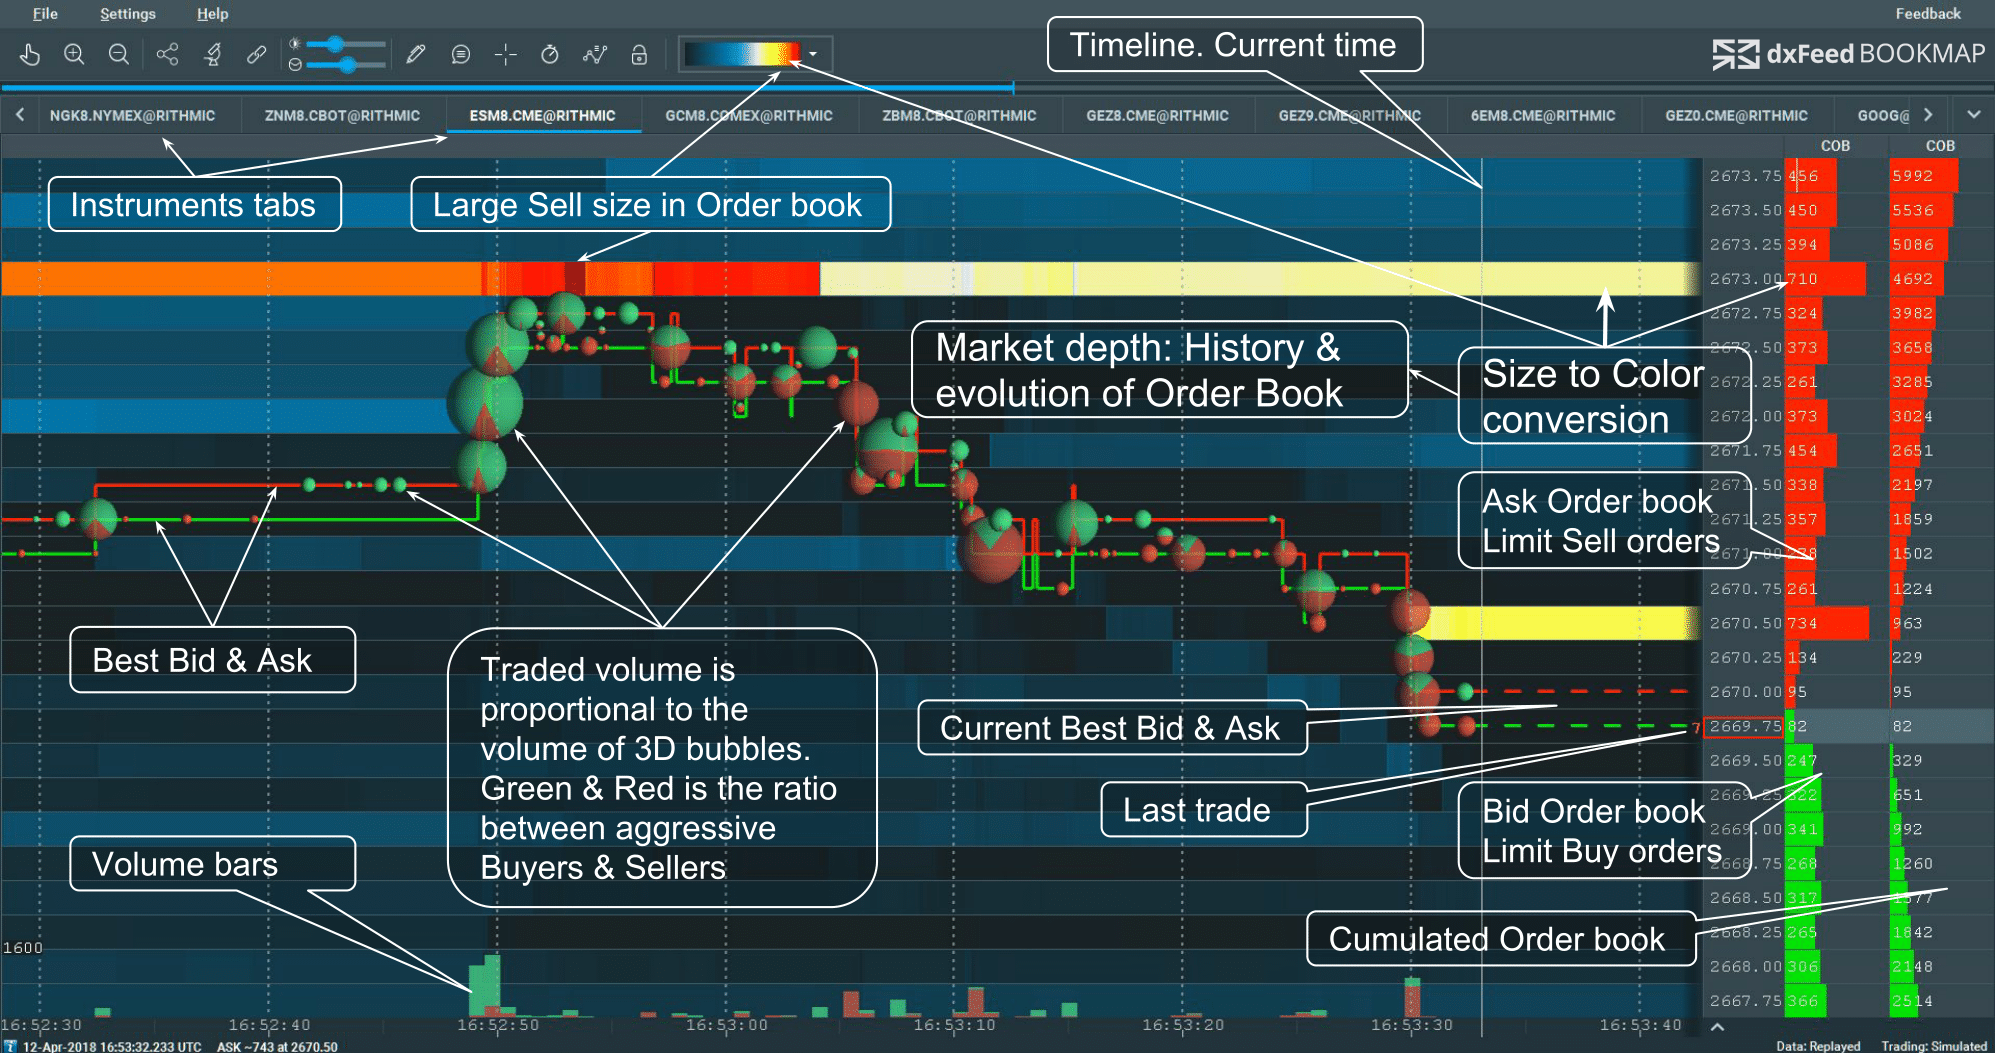 How to Trade via Bookmap: a Detailed Step-By-Step Guide | Bookmap